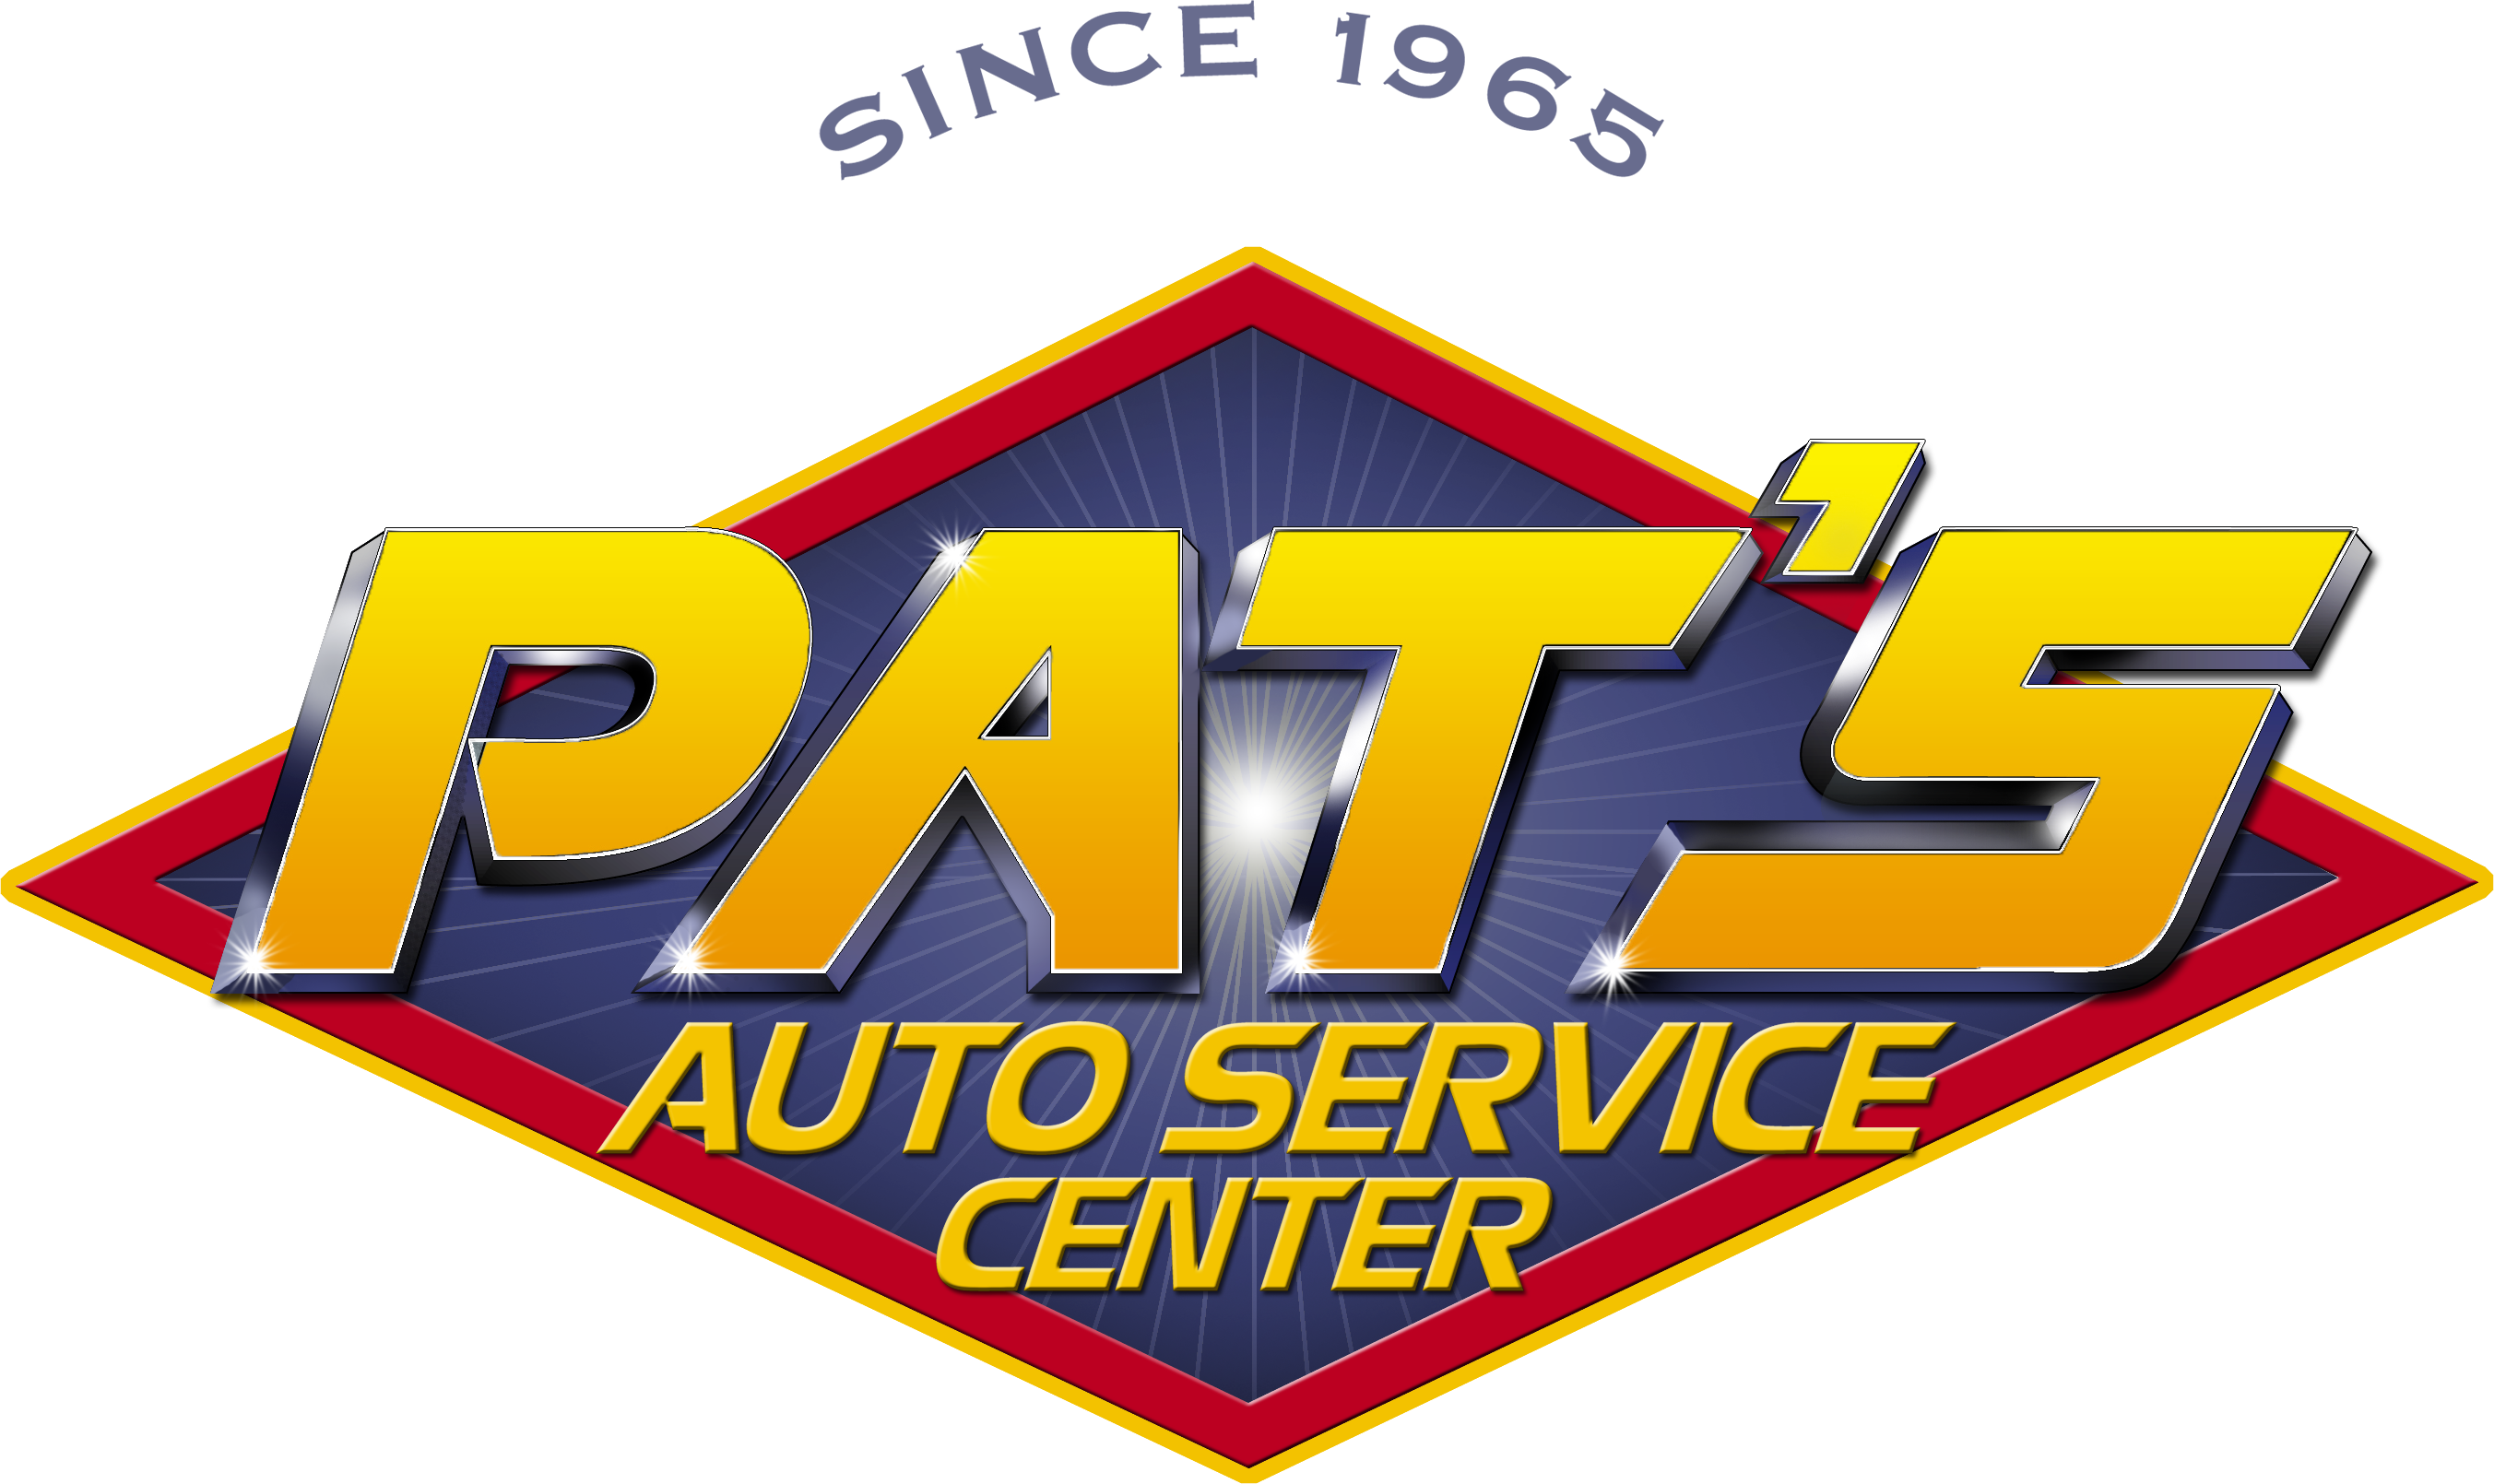 Pats auto service center quality service heroic savings logo xflitez Image collections